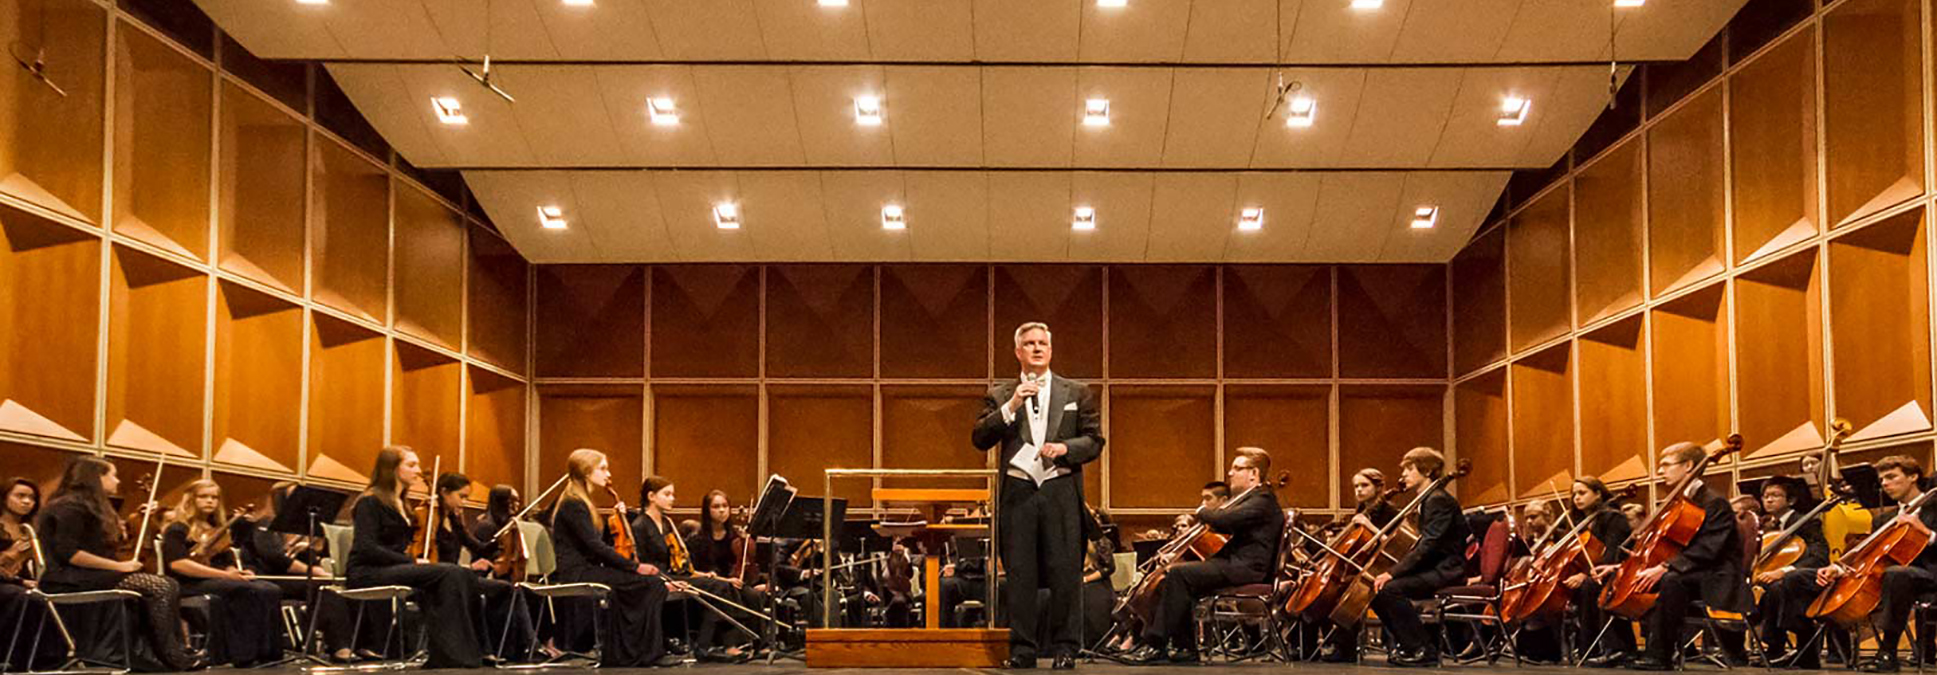 MYSO at the Marcus Center Photo by Janviere